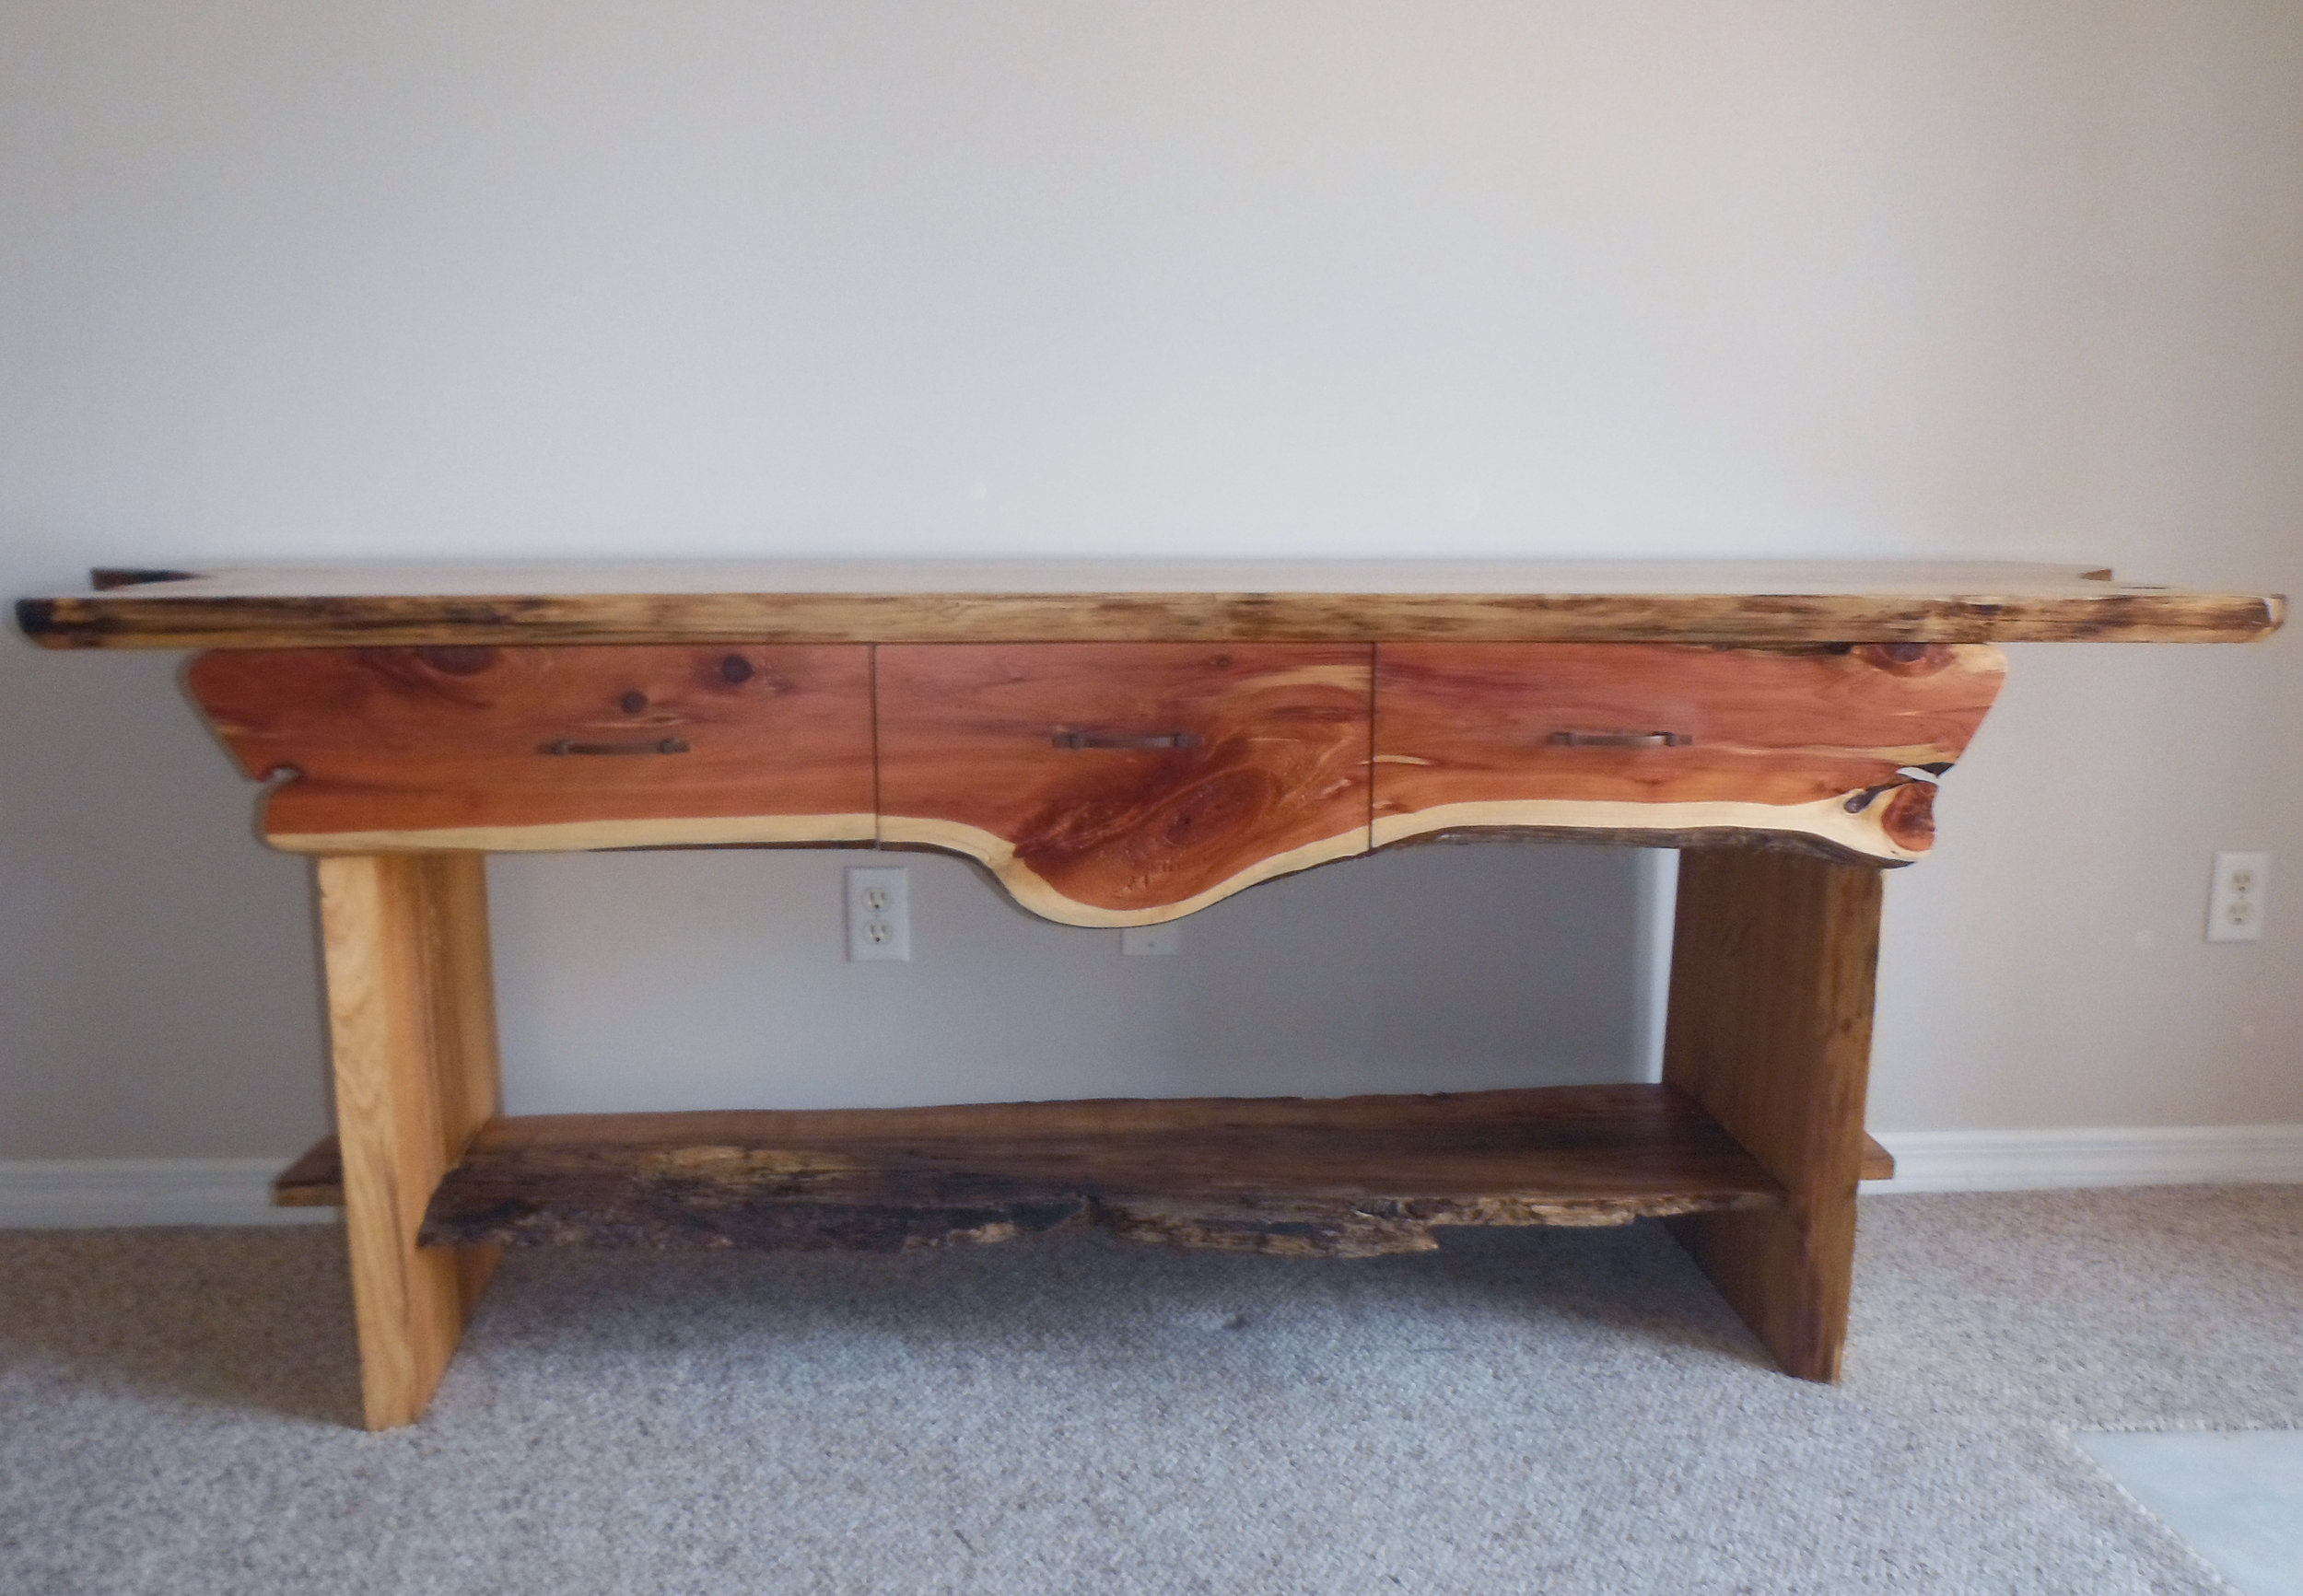 console table front view.jpg